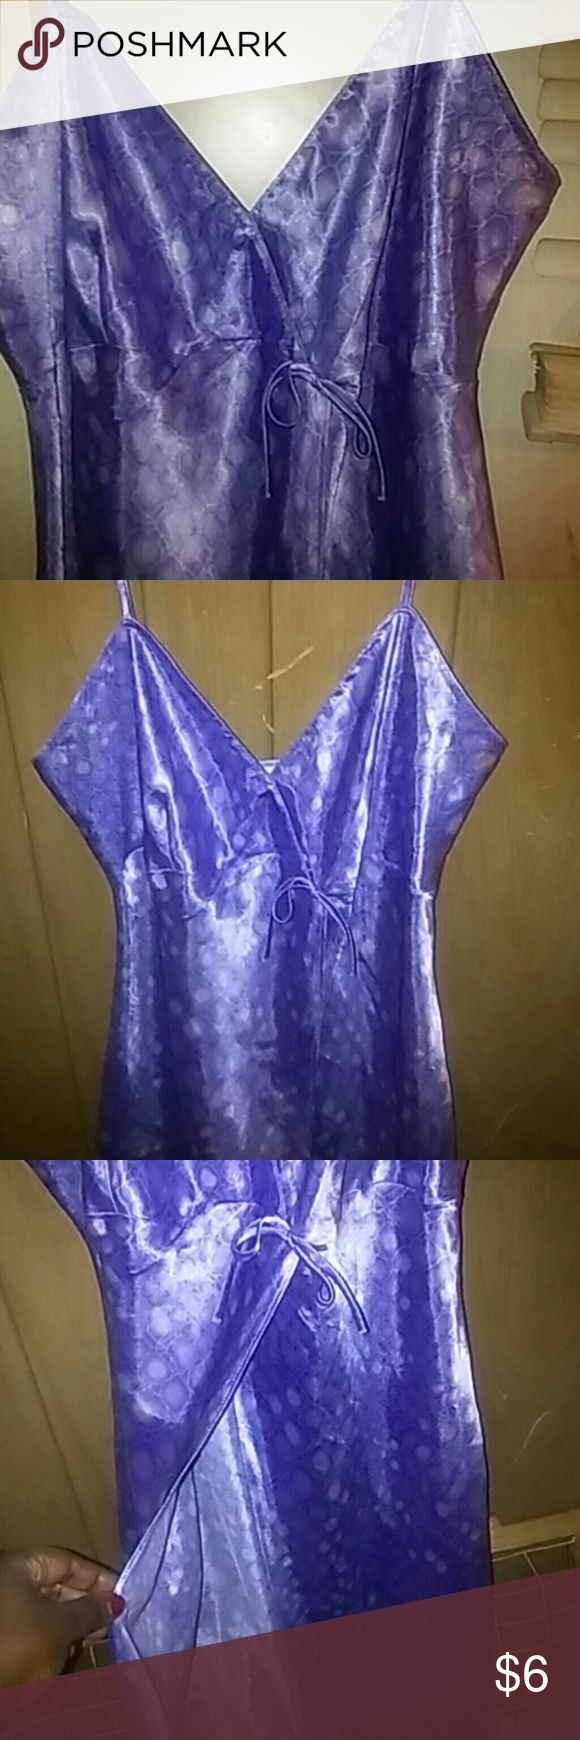 💖2/$12💖Satin Lingerie gown Lilac colored long lingerie gown with split and adjustable straps..too small when bought..never worn Secret Treasures Intimates & Sleepwear Chemises & Slips